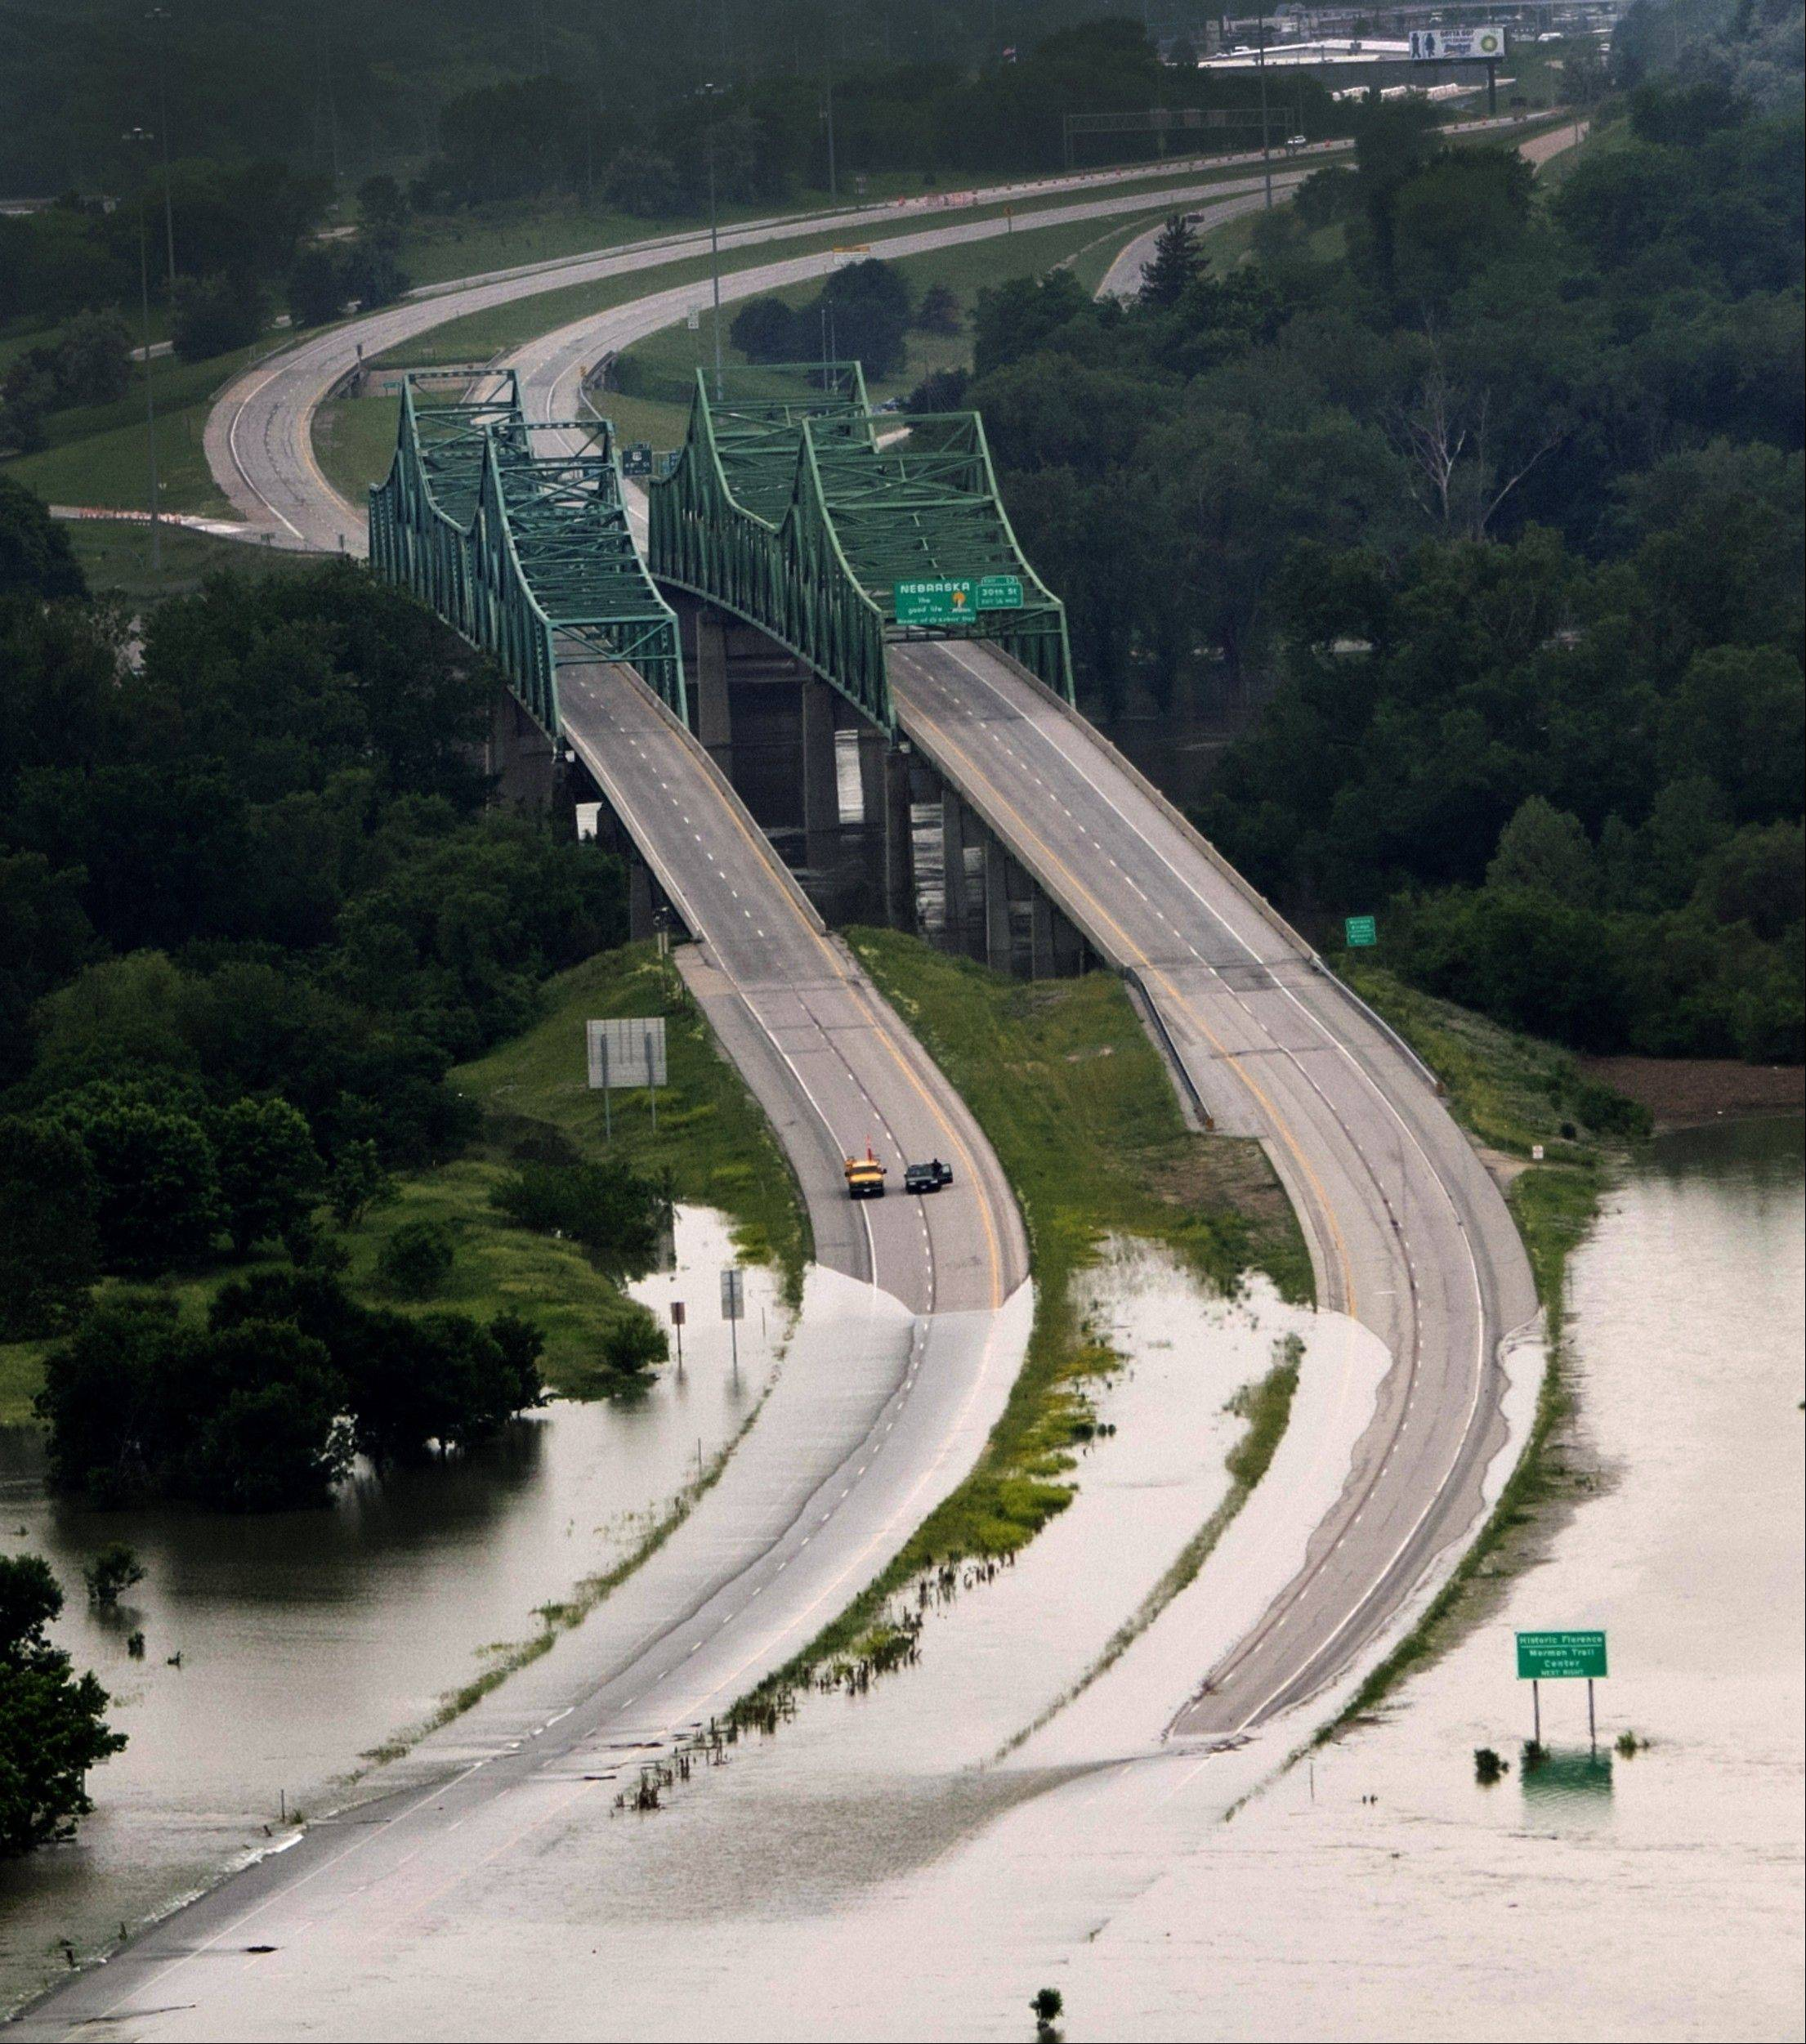 Interstate 680, which connects Omaha, Neb., with Iowa at the Mormon Bridge, was flooded last month on the Iowa side, The tornadoes and floods that pummeled much of the South and Midwest also have dealt a serious blow to struggling state budgets. The storms could force new cuts to education and other services to offset hundreds of millions of dollars in disaster aid.